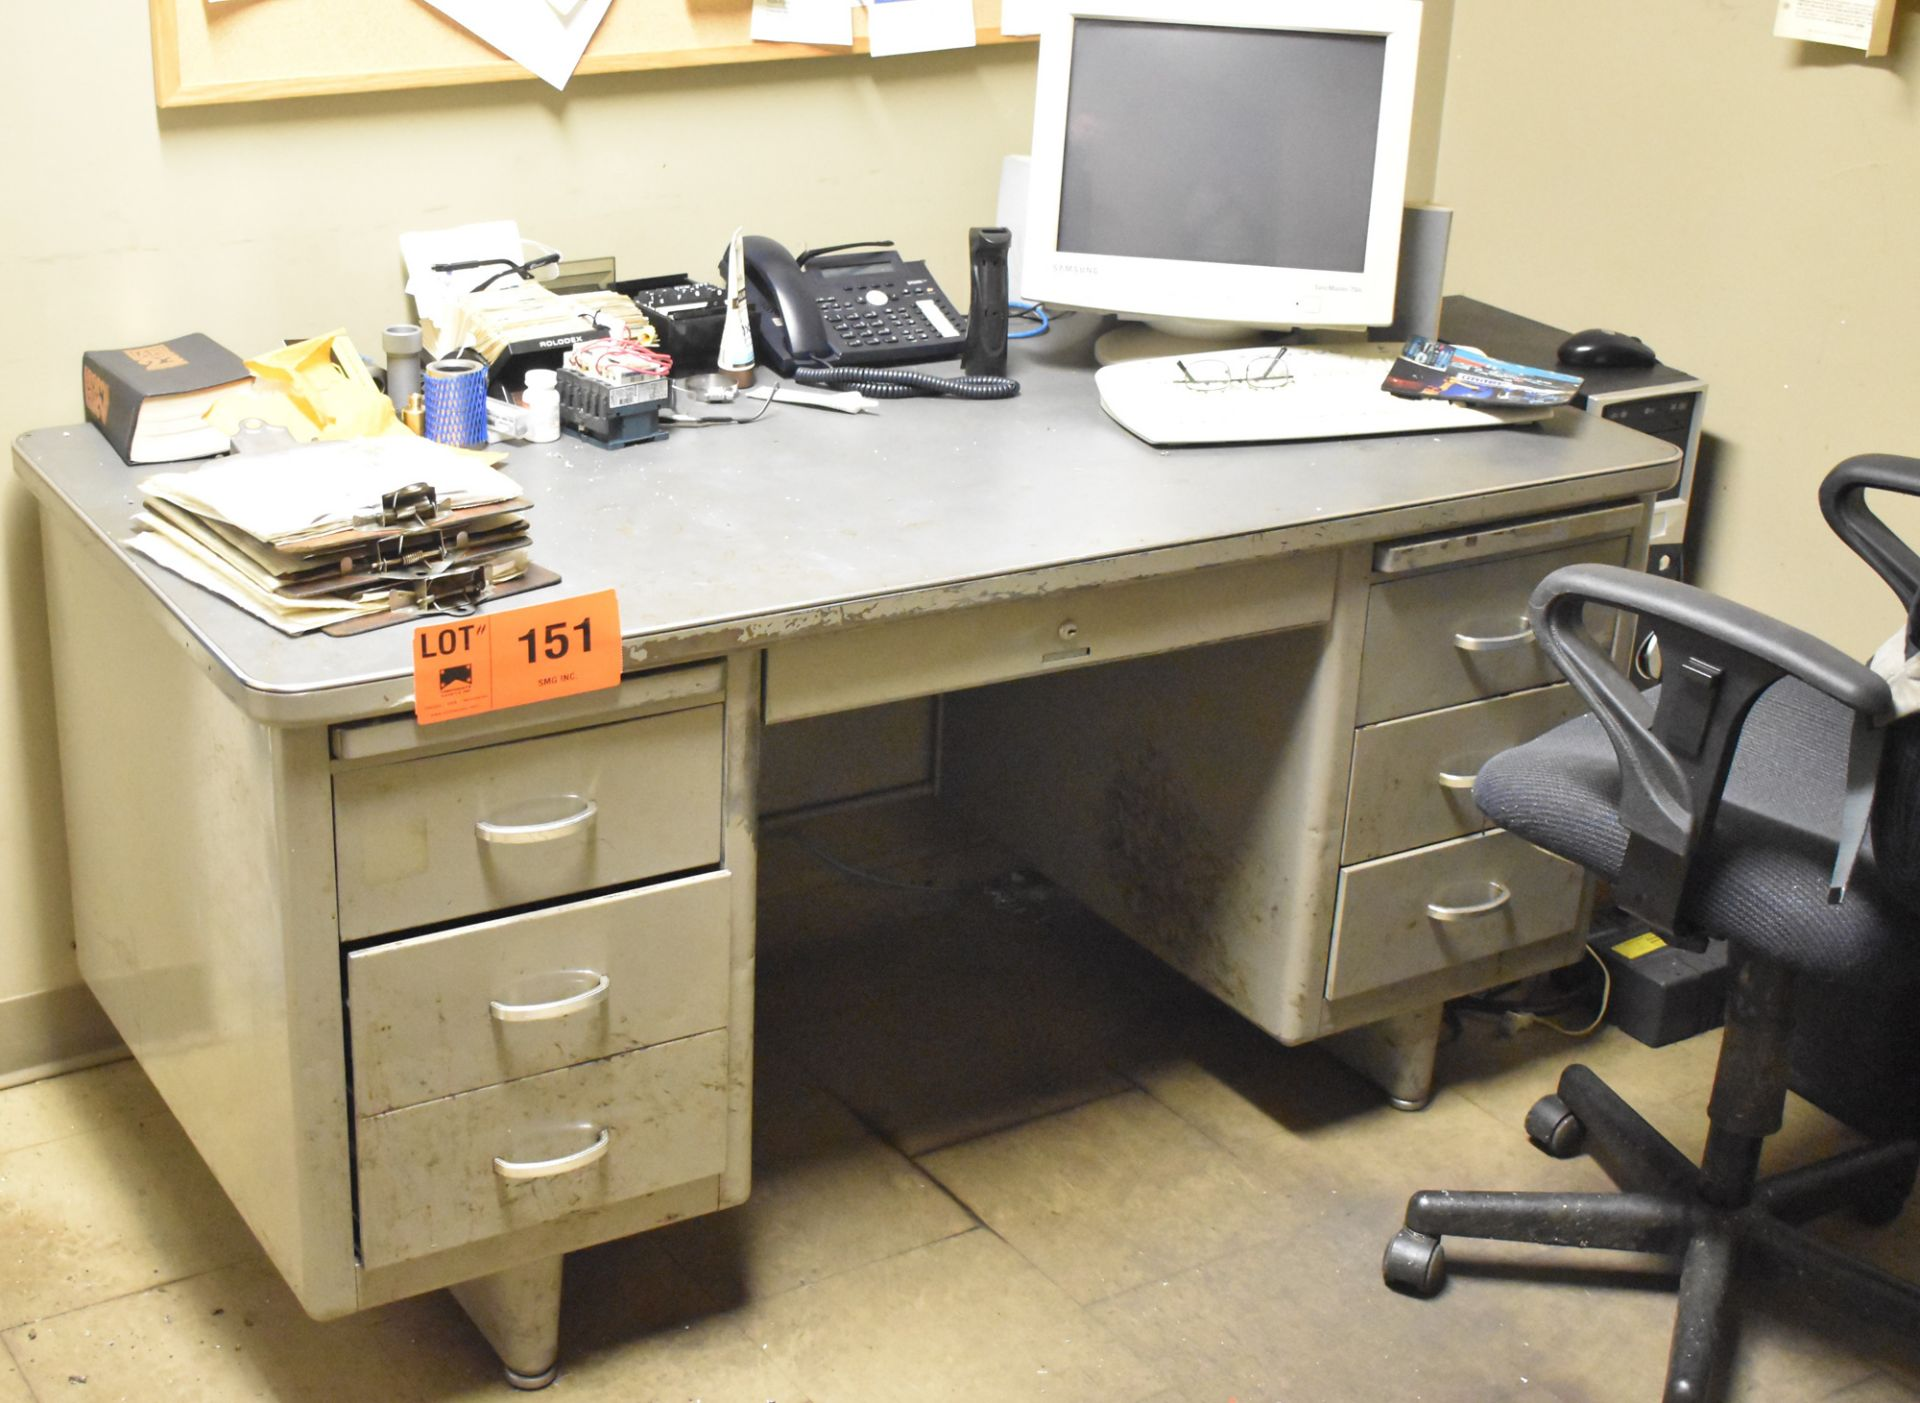 Lot 151 - LOT/ REMAINING OFFICE FURNITURE IN ROOM